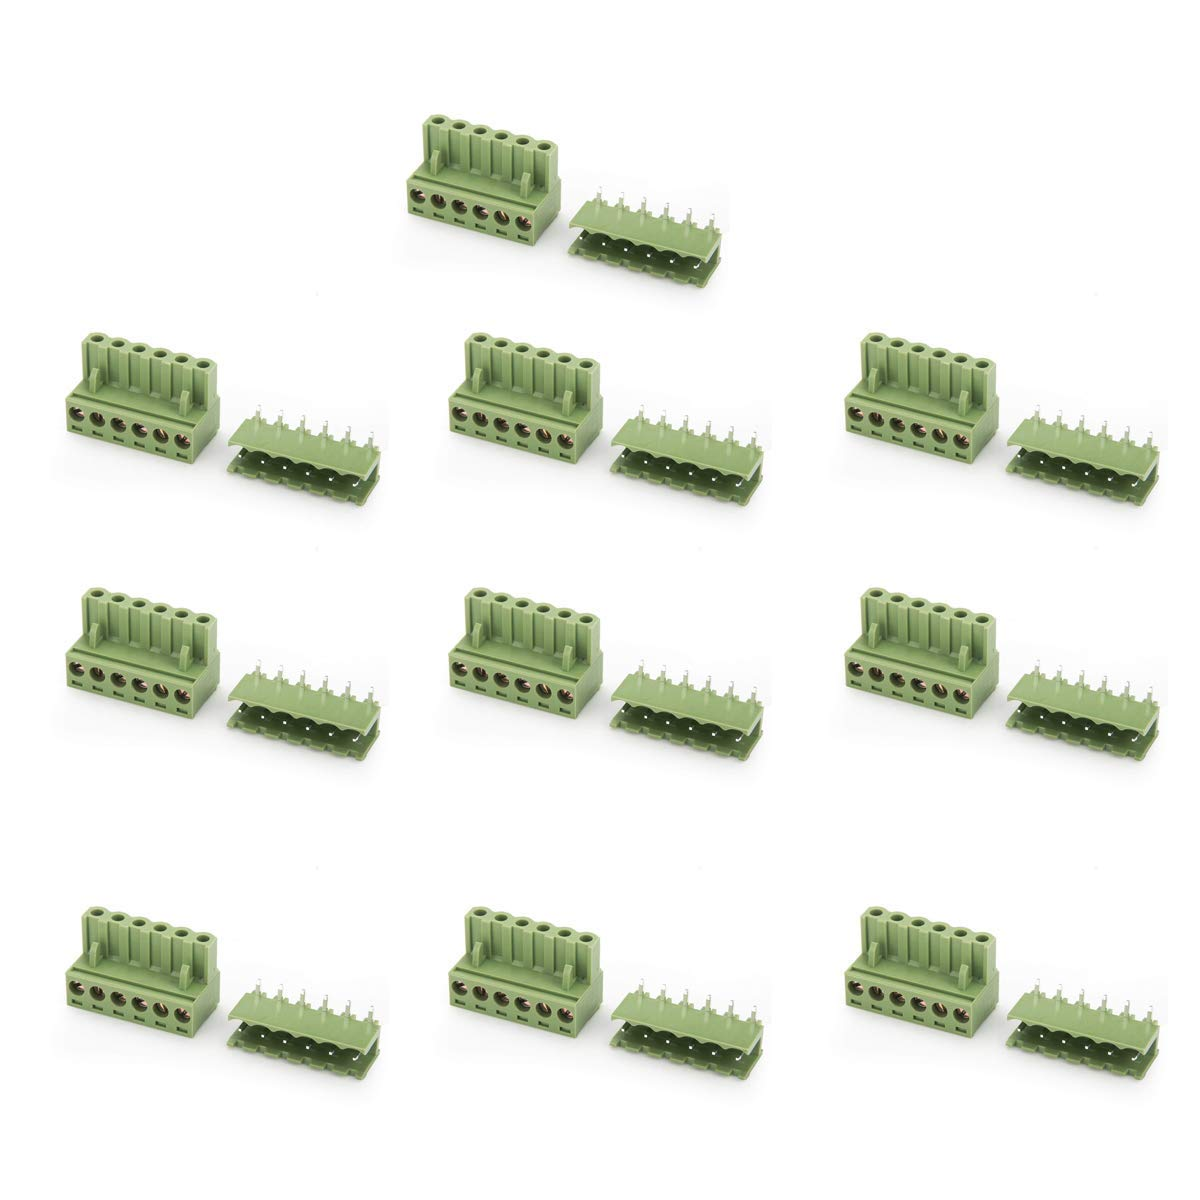 DIYhz 10PCS 300/320V 10/15A 5.08mm 6 Pin Plastic Parts Socket PCB Screw Pluggable Terminal Block Connector for All Kinds of Electronic Products or Electronic Cables